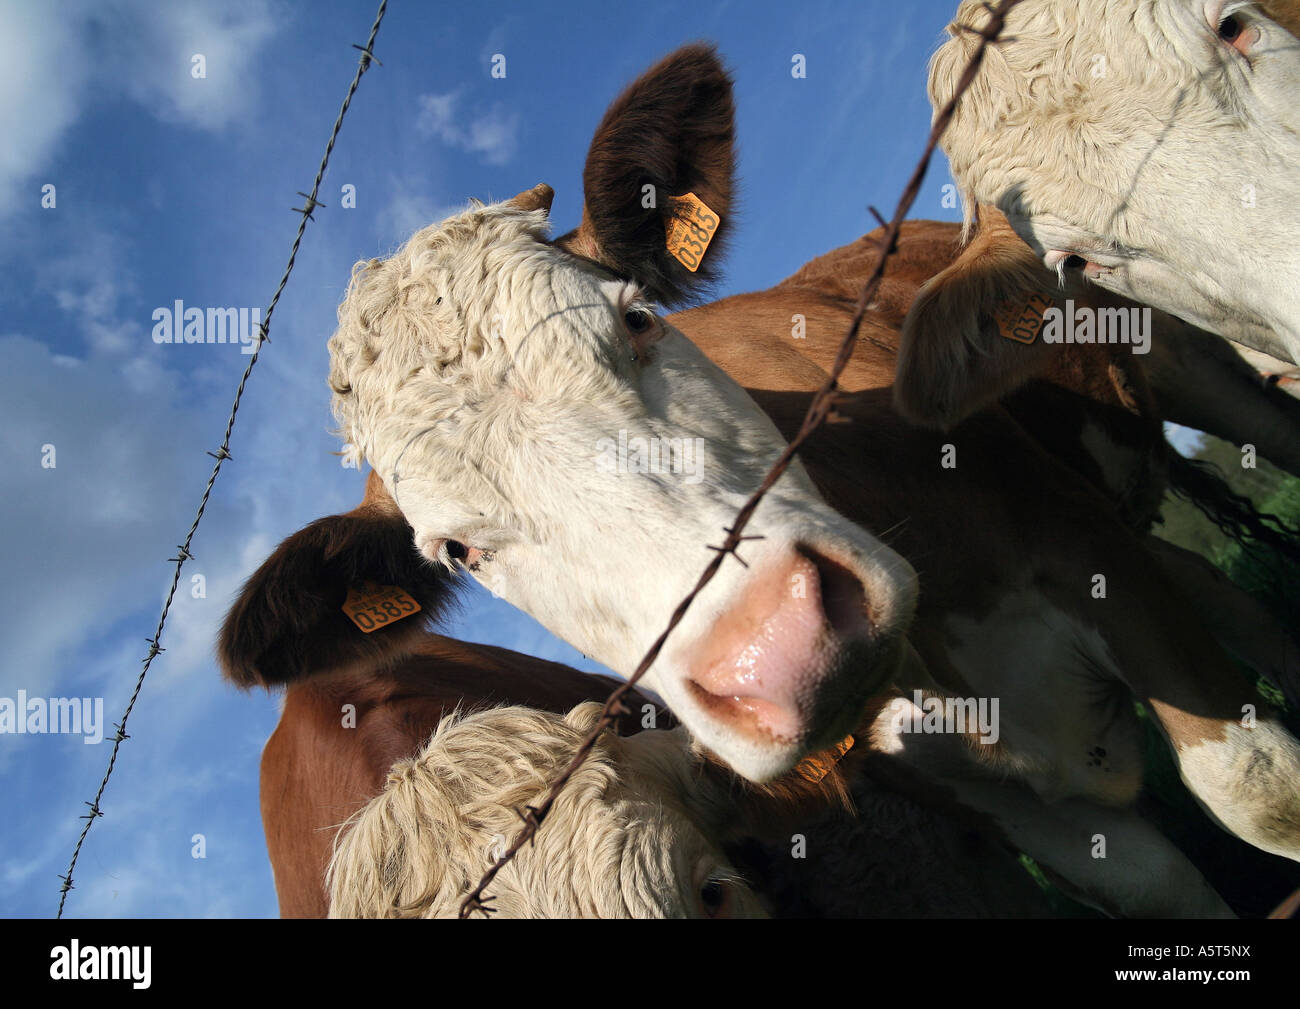 Cows looking through barbed wire fence, close-up - Stock Image